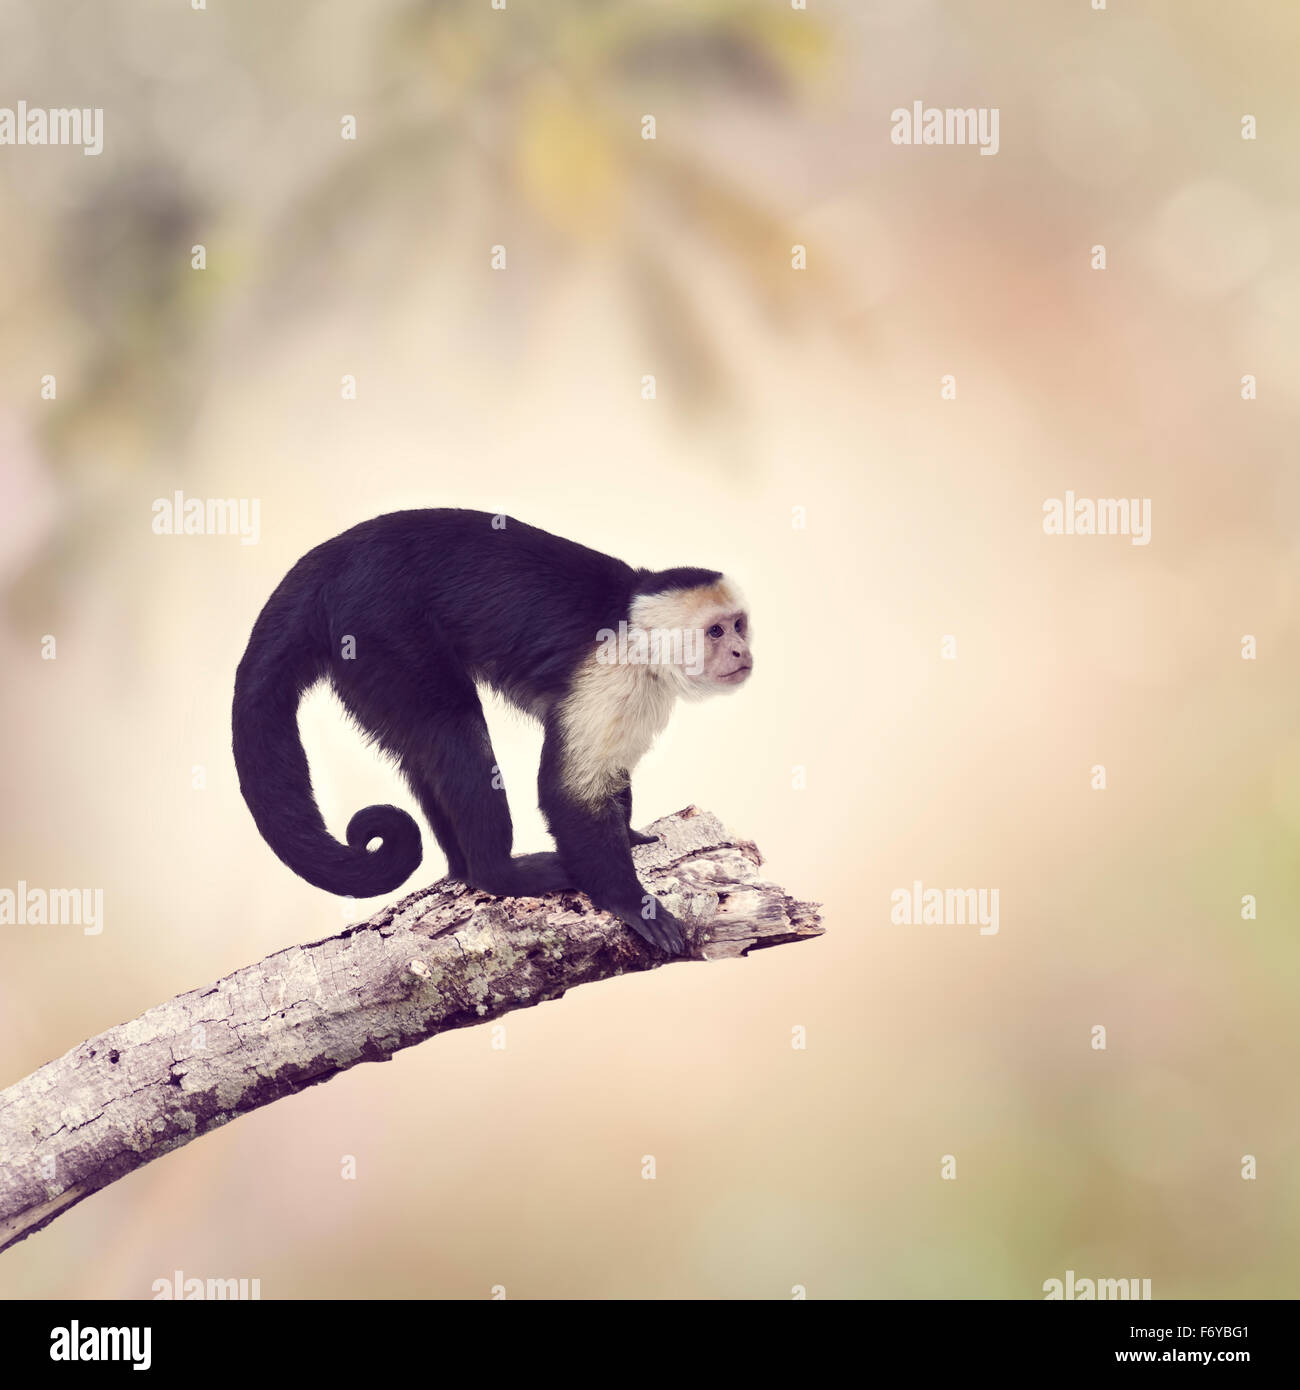 White Throated Capuchin Monkey on a Branch - Stock Image